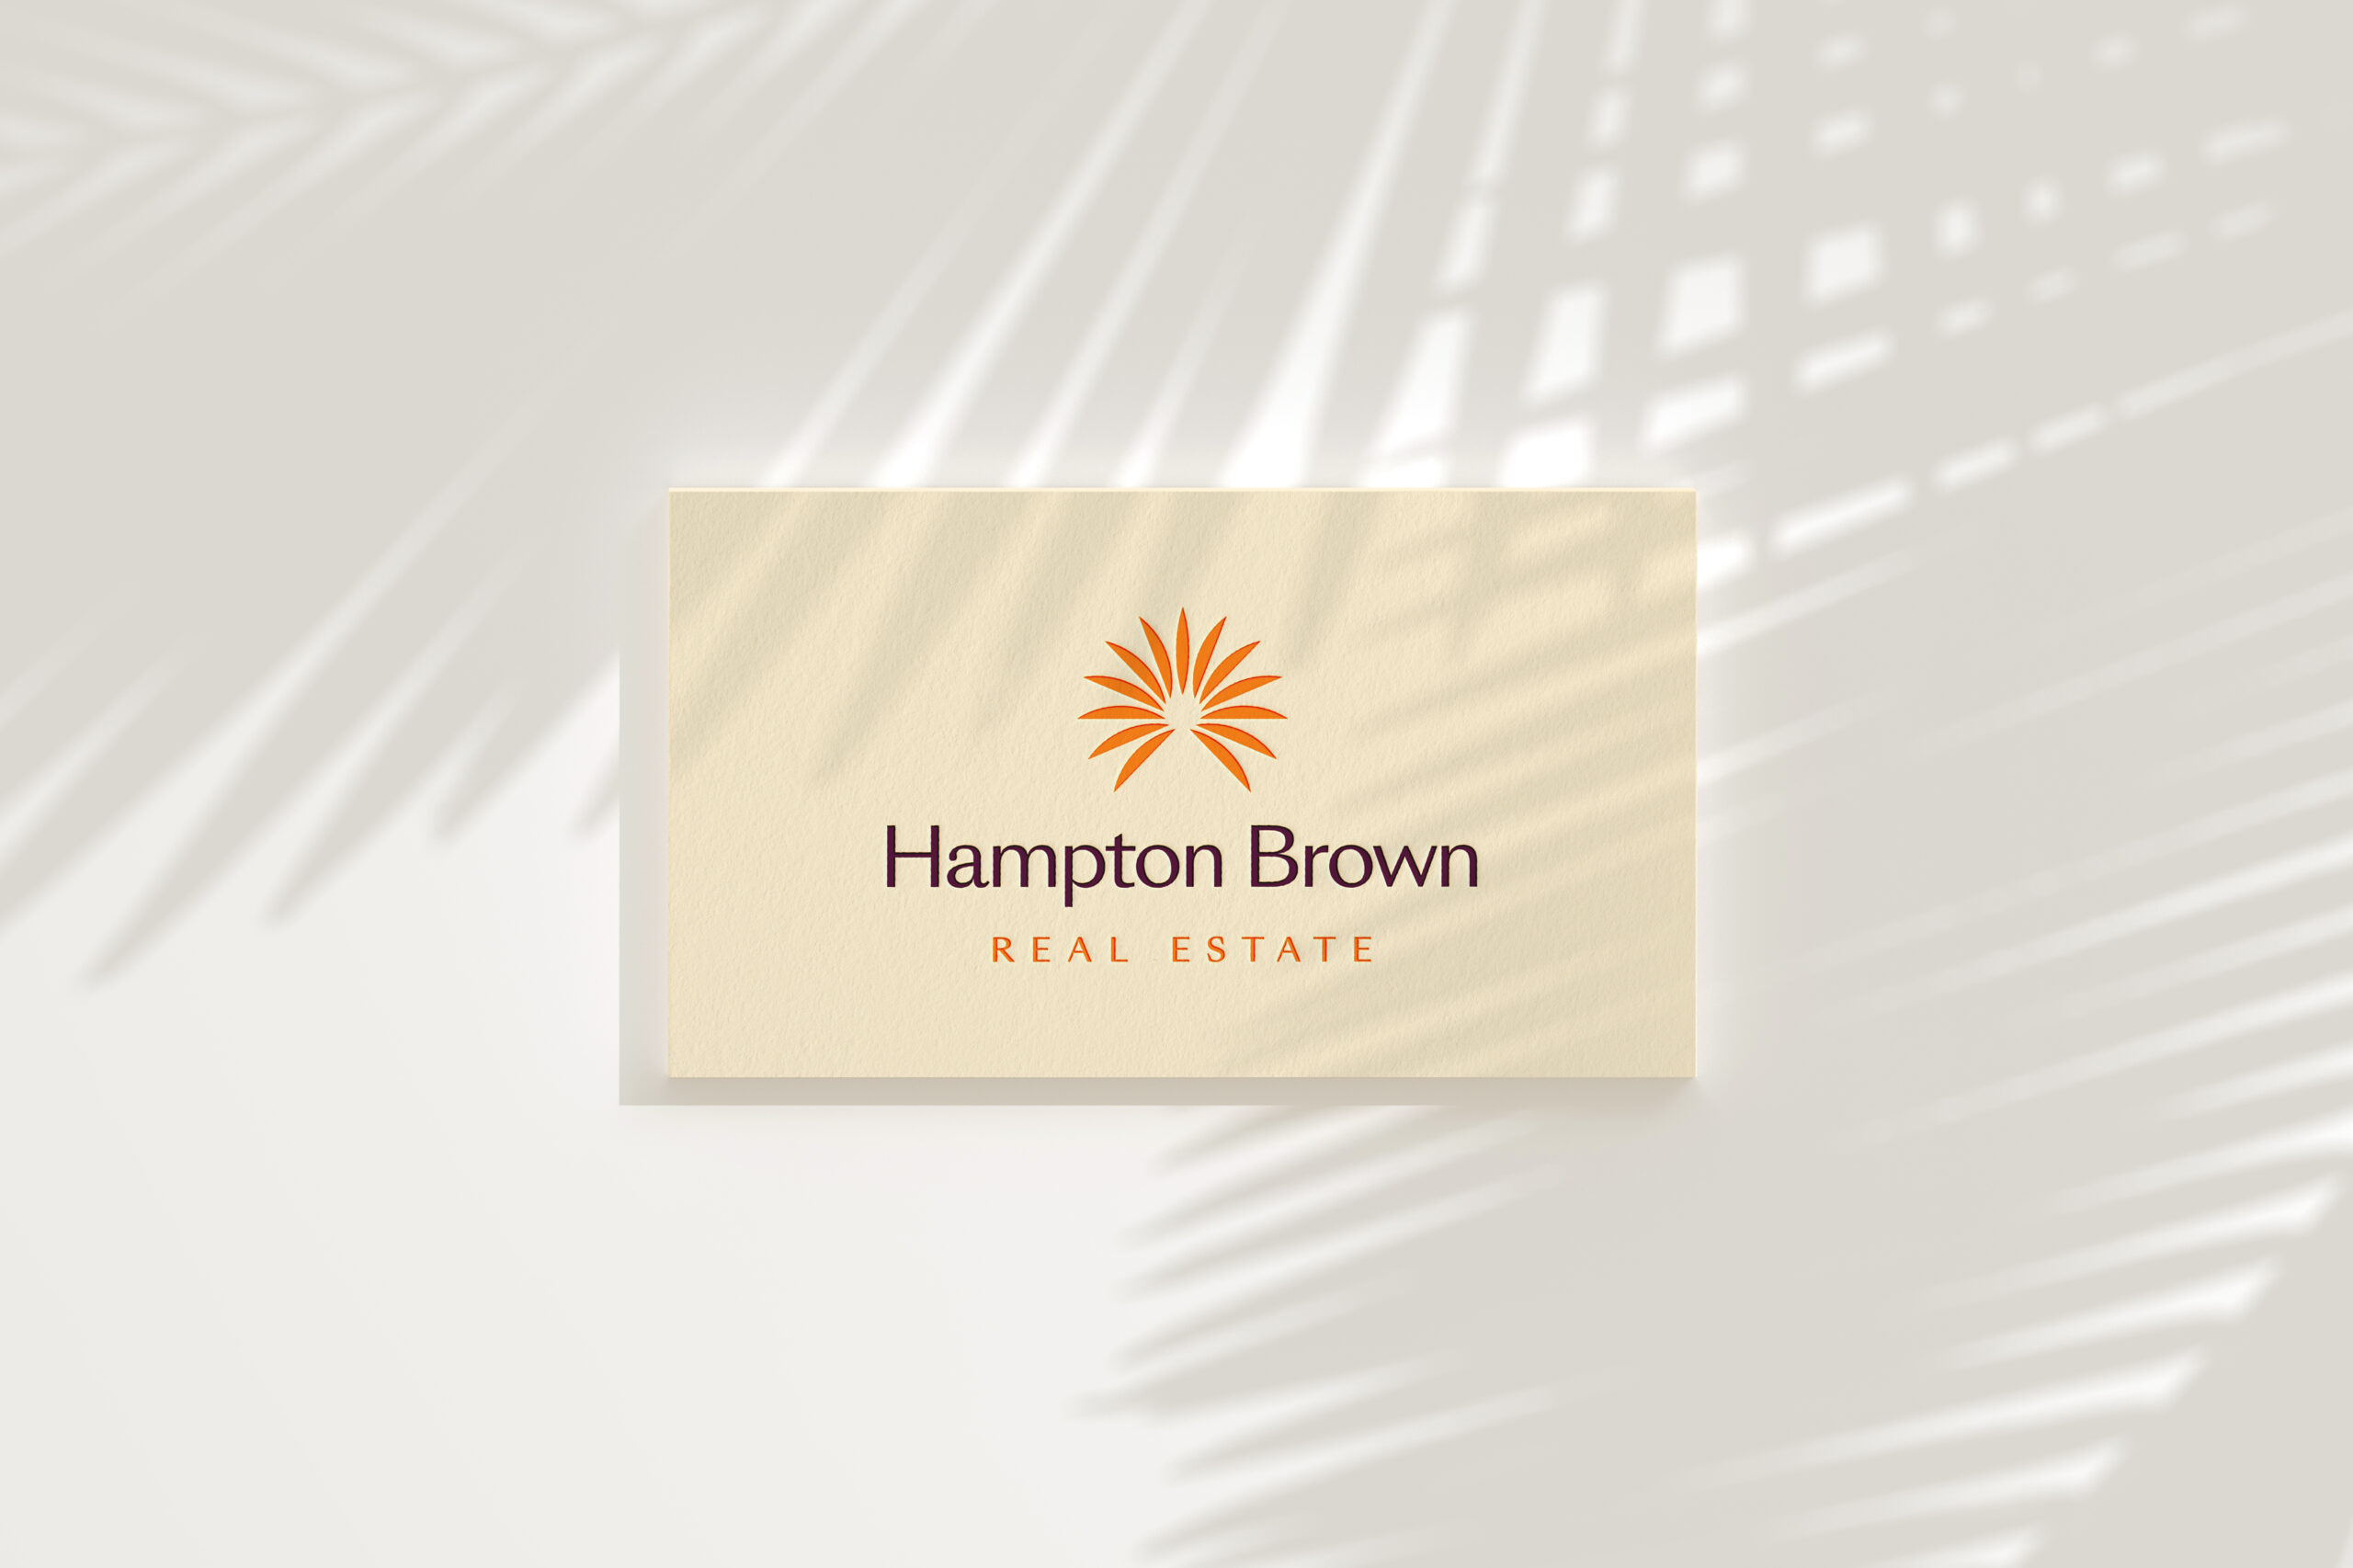 Hampton Brown printed business cards with shadows of palm trees falling across